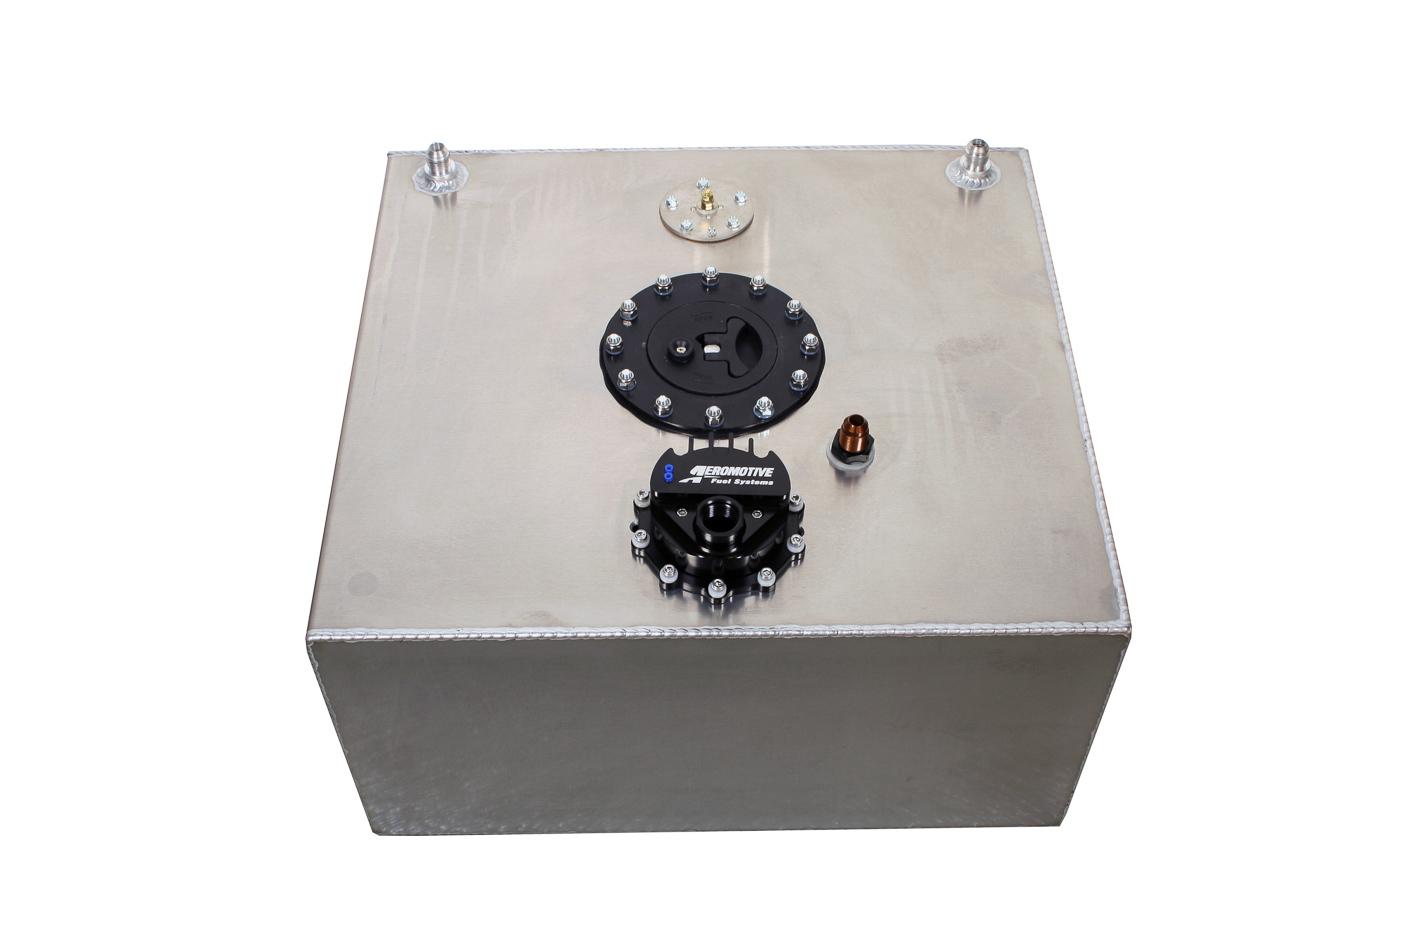 Aeromotive 18360 Fuel Cell and Pump, A1000 Brushless Fuel Cell, 15 gal, 20 x 18 x 10 in Tall, 10 AN O-Ring Outlet, 8 AN Return, 8 AN Vent, Aluminum, Natural, E85 / Gas, Universal, Each